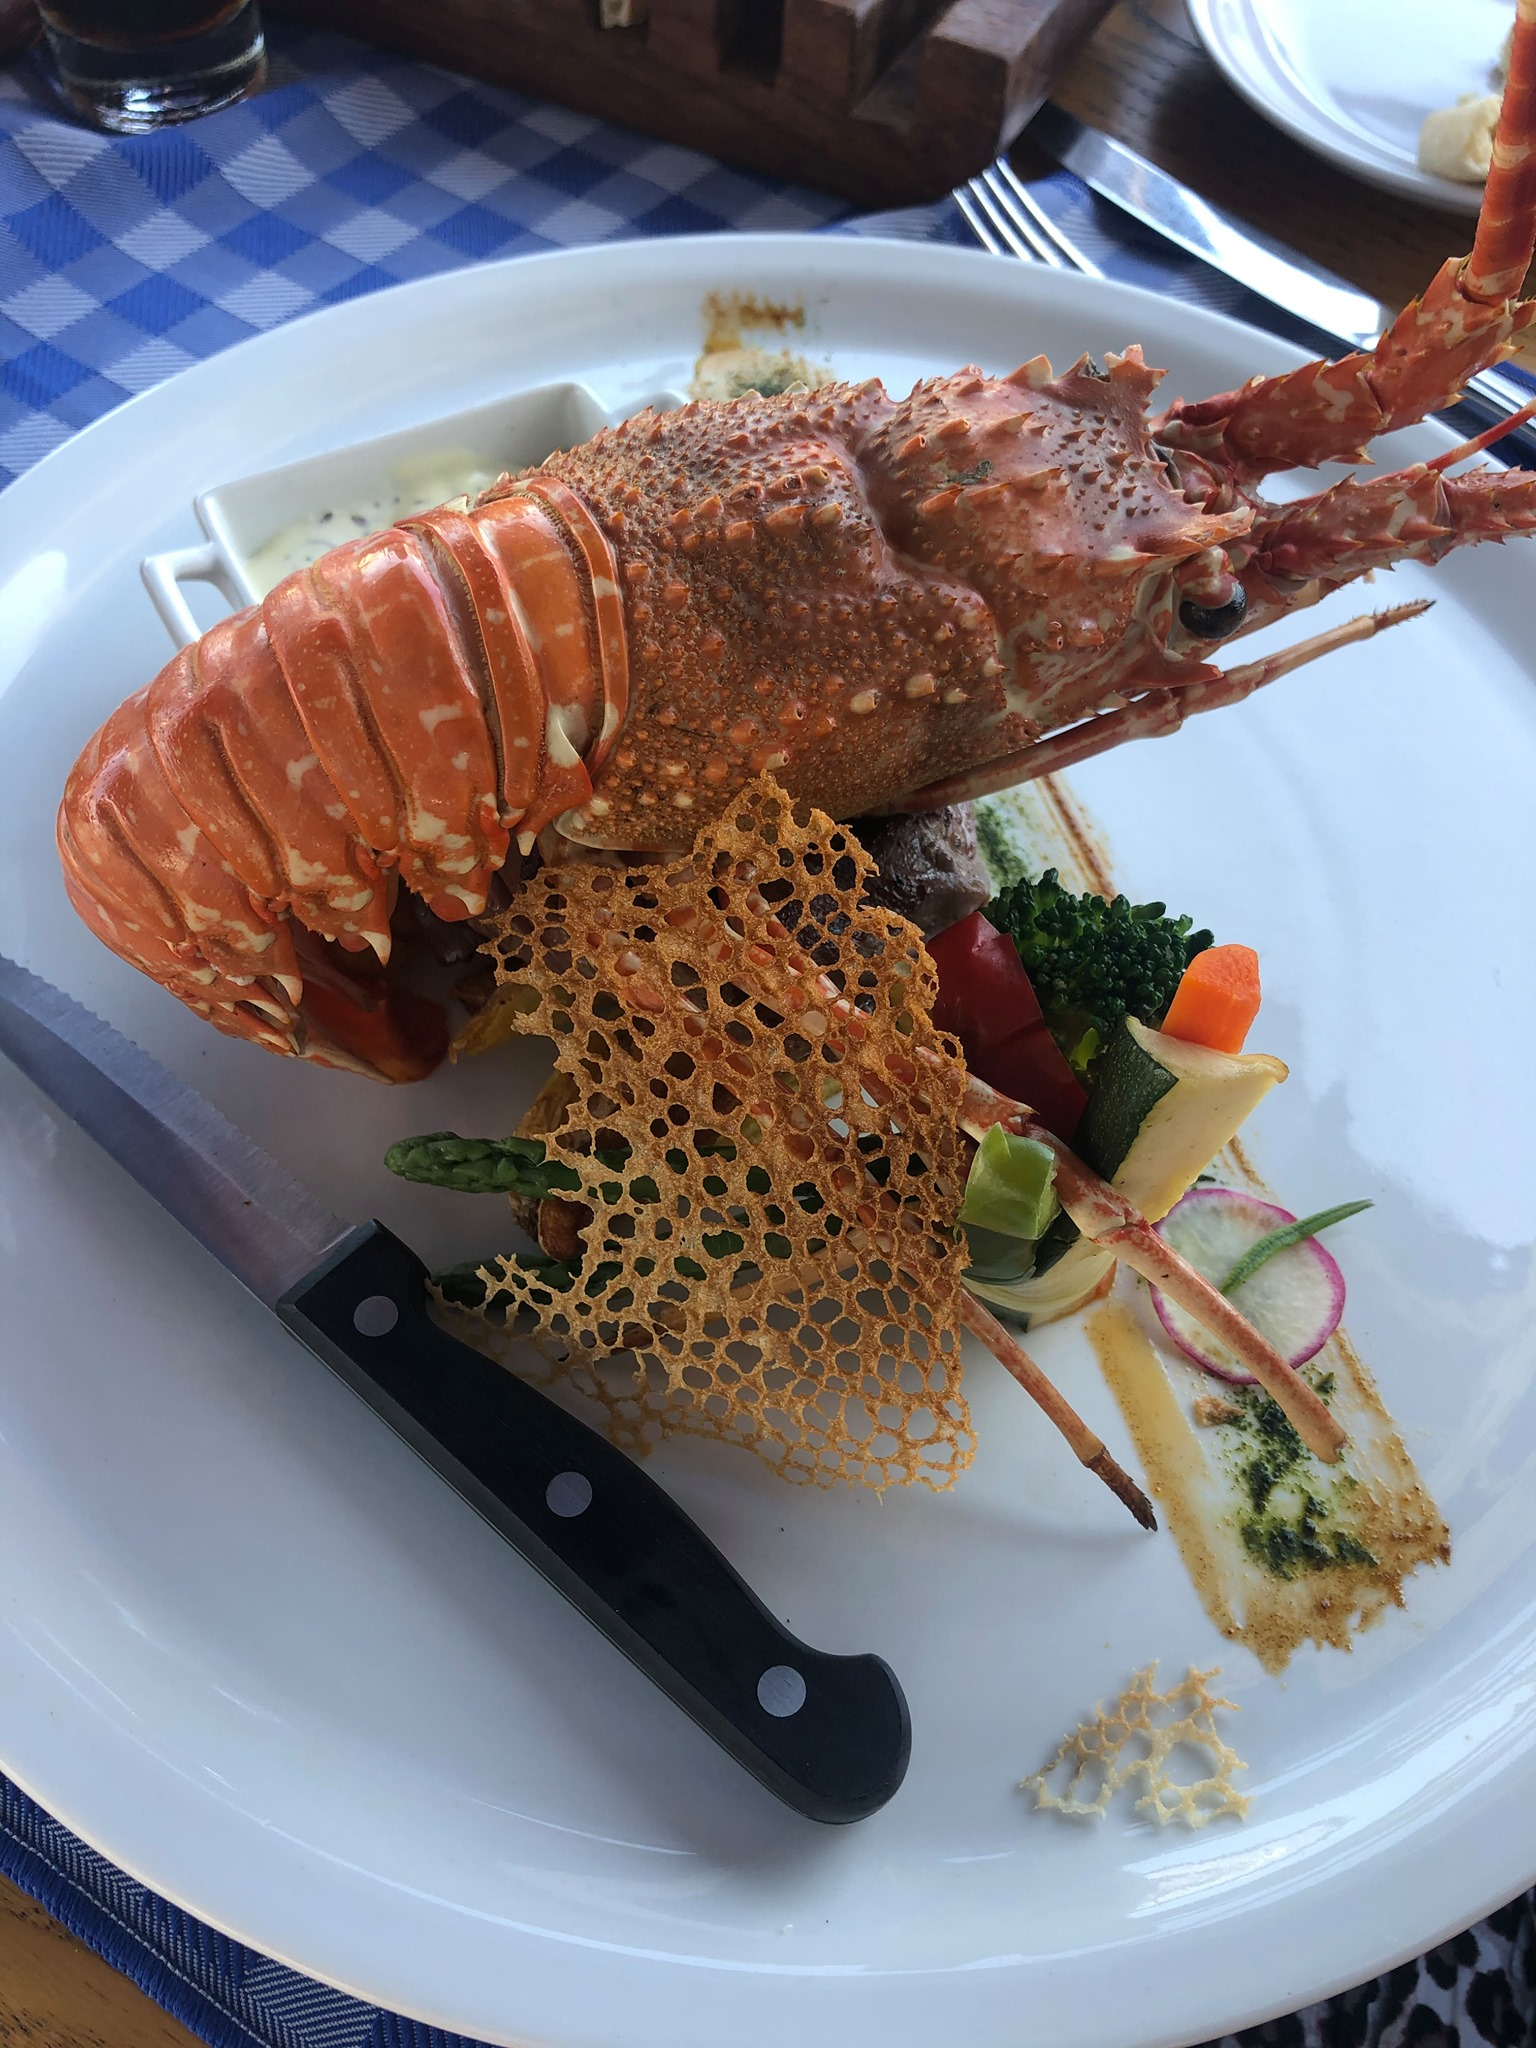 Indulge yourself with fresh seafood at Paphos Pelican Restaurant